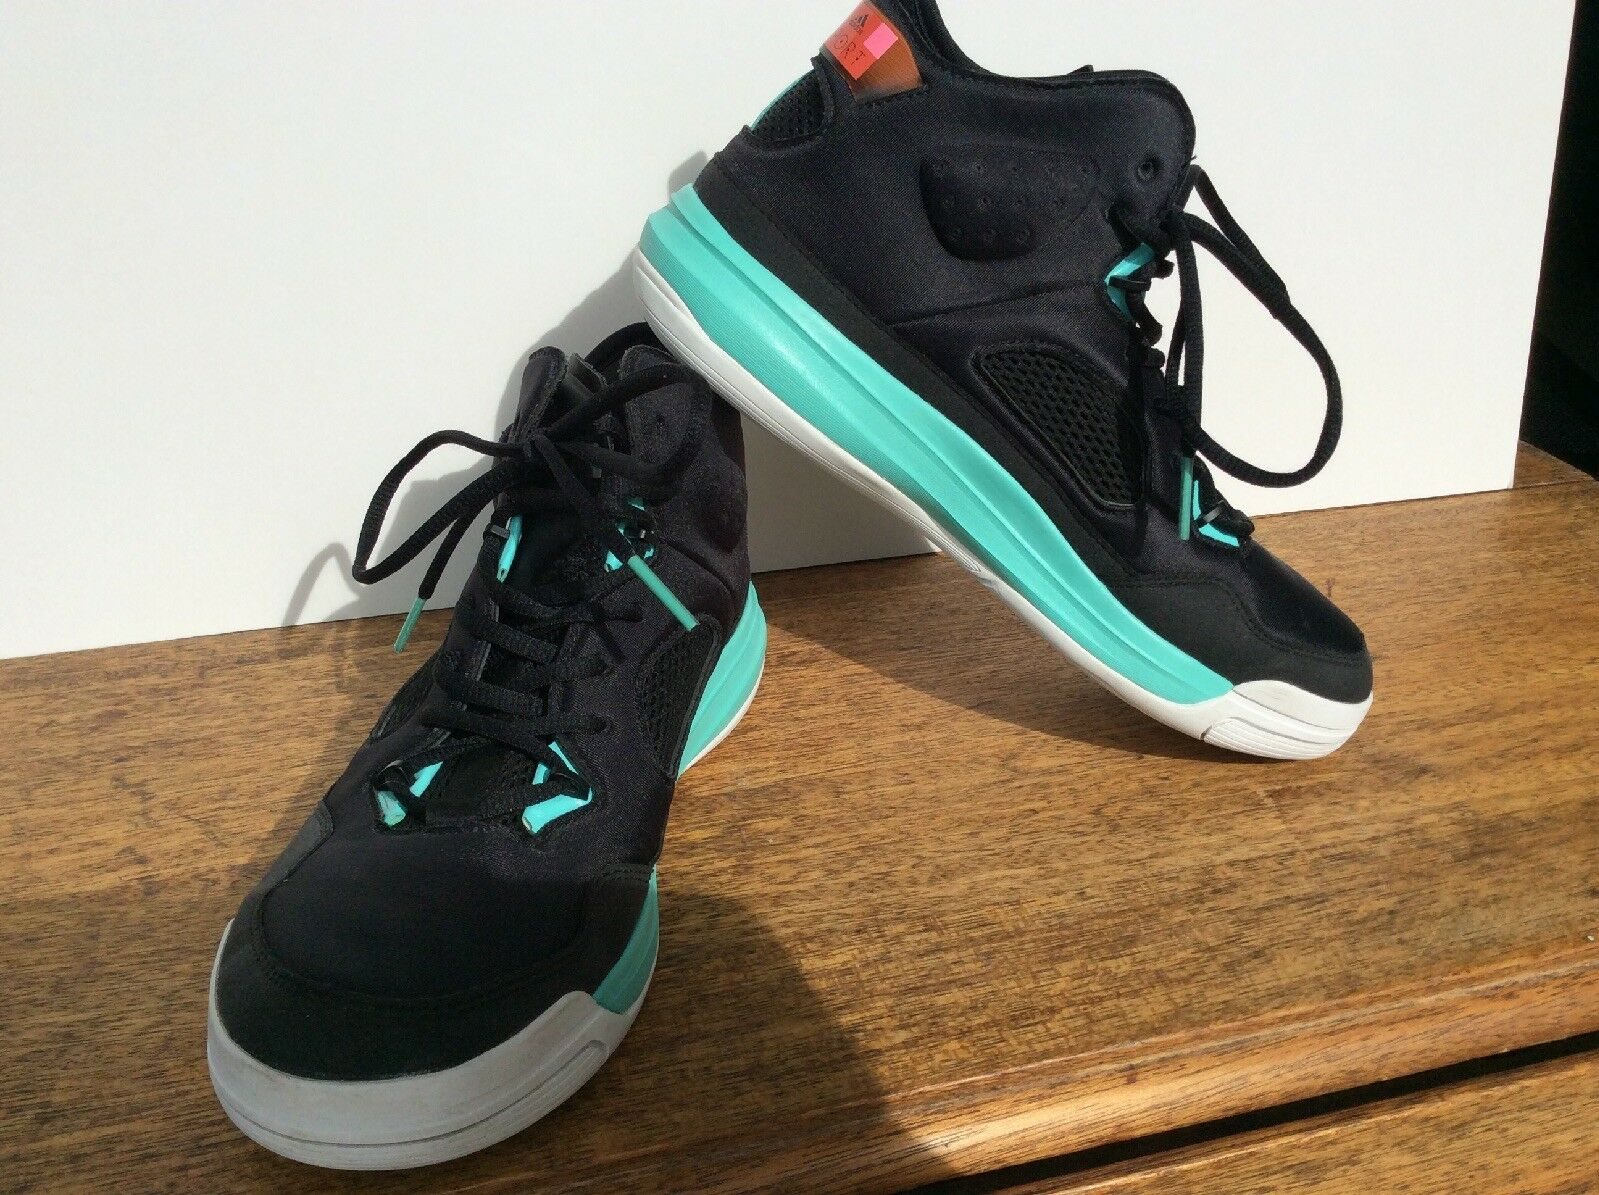 STELLA SPORT ADIDAS MCCARTNEY SIZE 10 BLACK AQUA blueE ATHLETIC